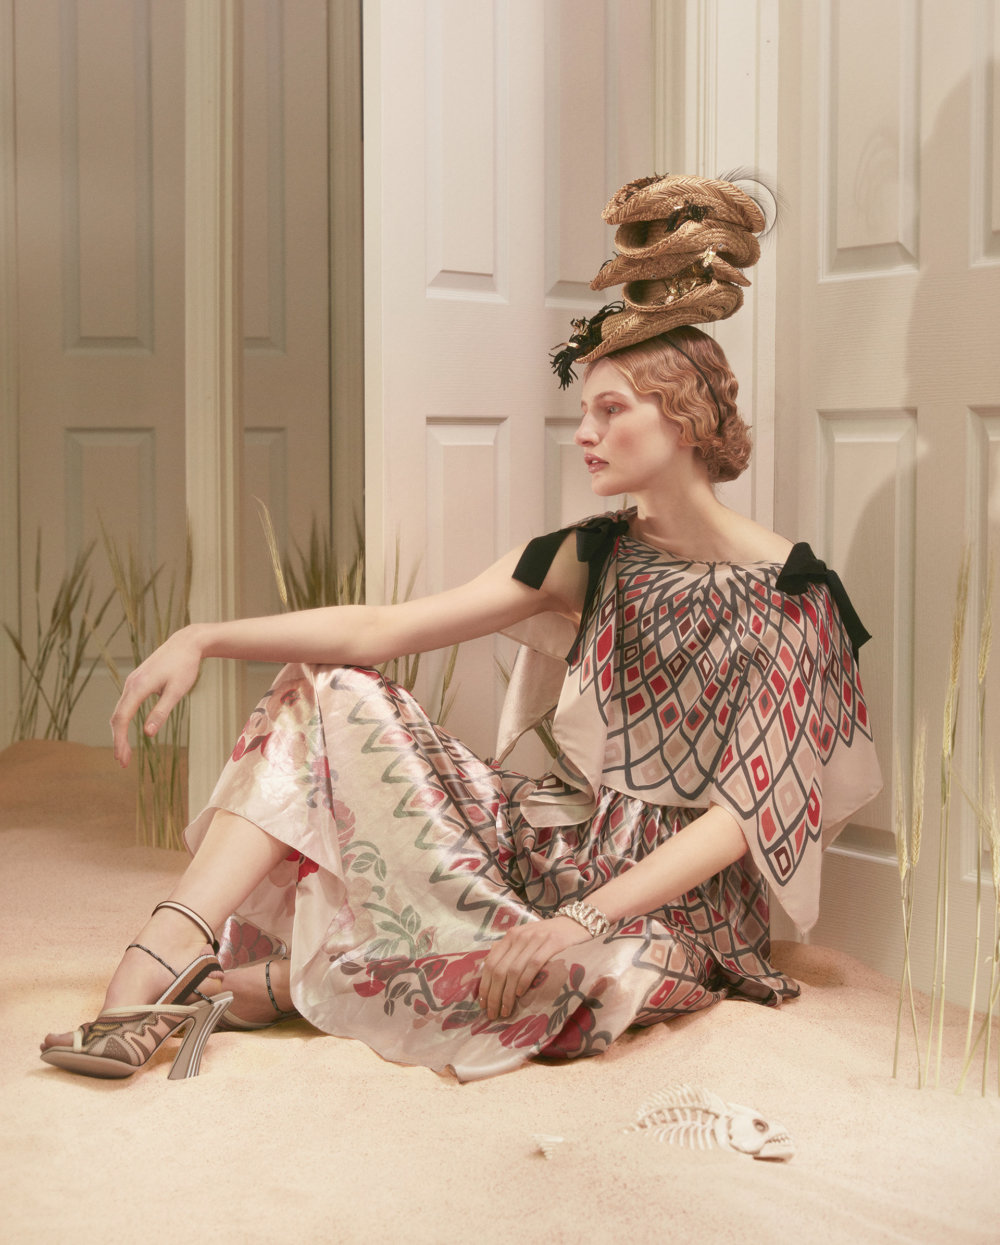 Dorothea Tanning A Fashion And Beauty Photograph Series By Sandrine And Michael 5